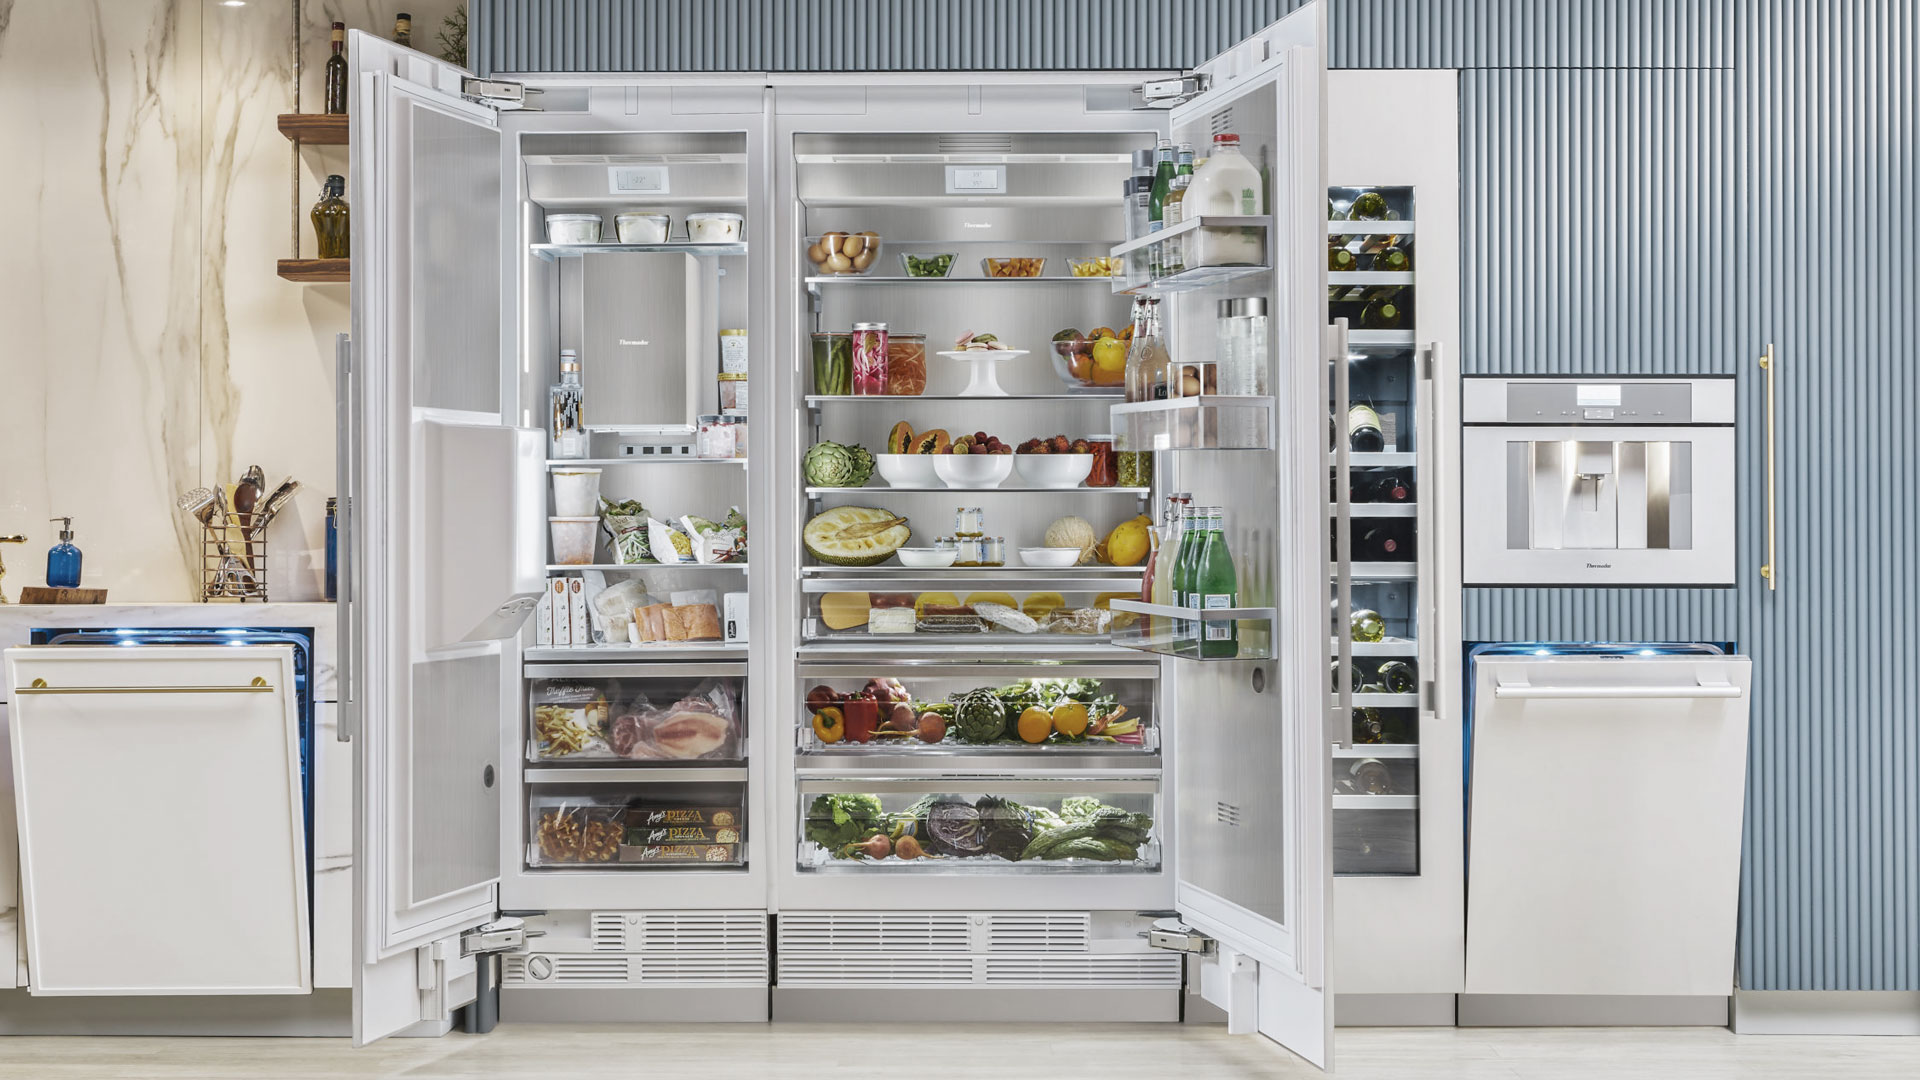 Thermador Appliance Repair Service San Diego | Thermador Appliance Repair Pros